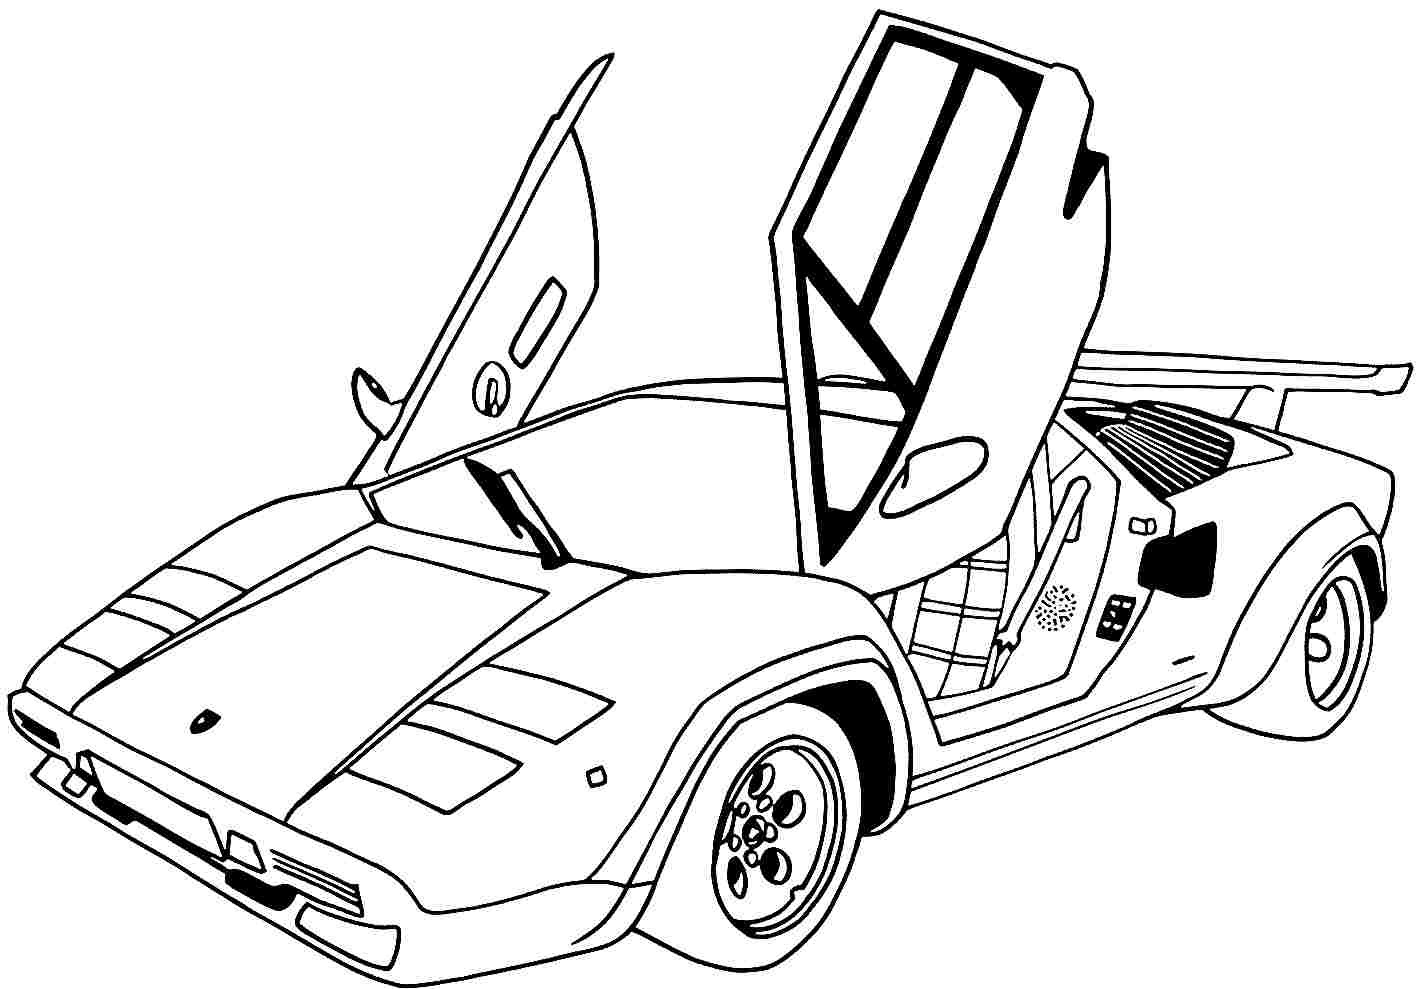 coloring pages ferrari cars cars coloring page ferrari laferrari f150 letmecolorcom coloring ferrari pages cars